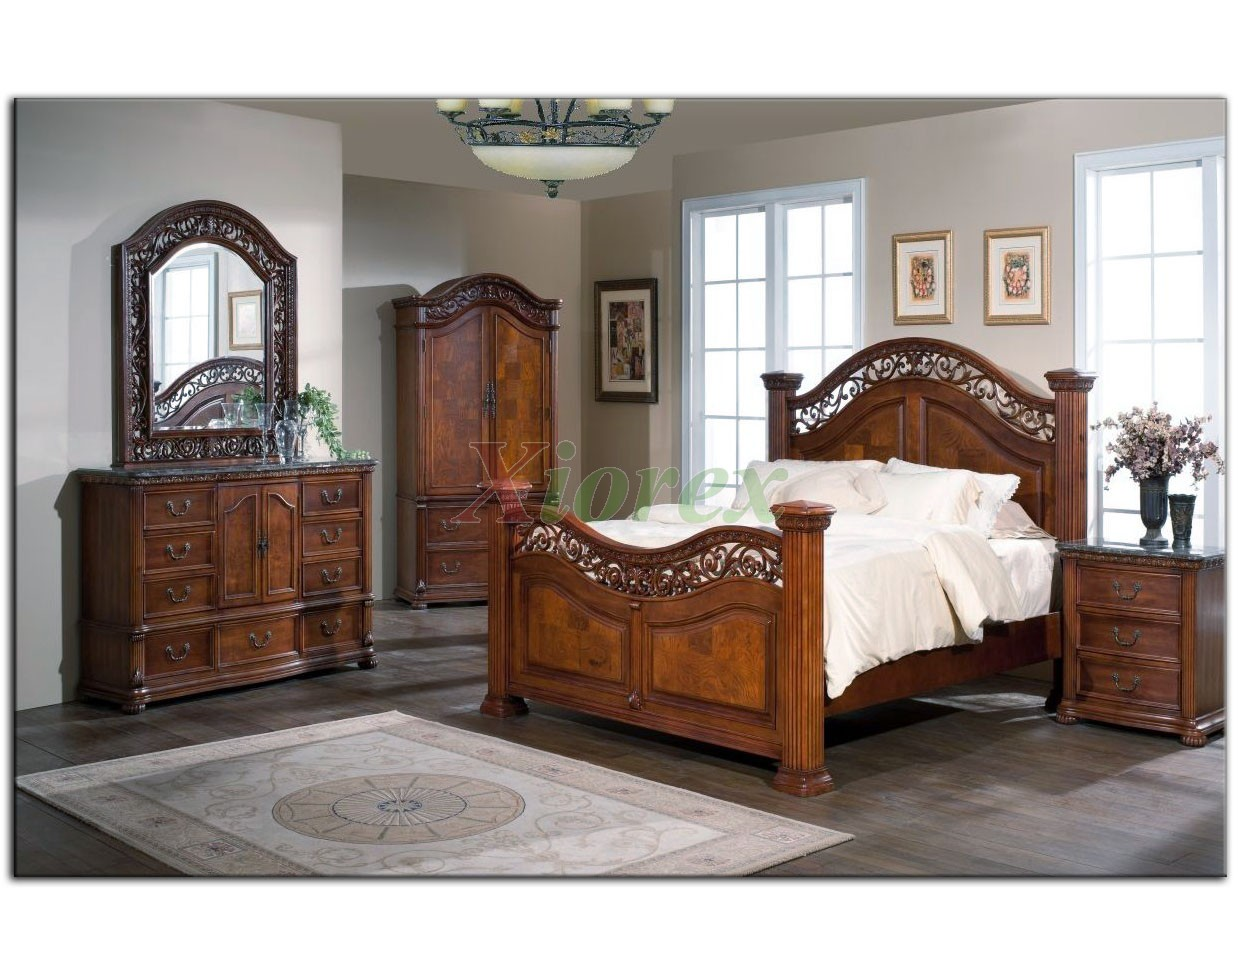 poster bedroom furniture set 114 xiorex. Black Bedroom Furniture Sets. Home Design Ideas